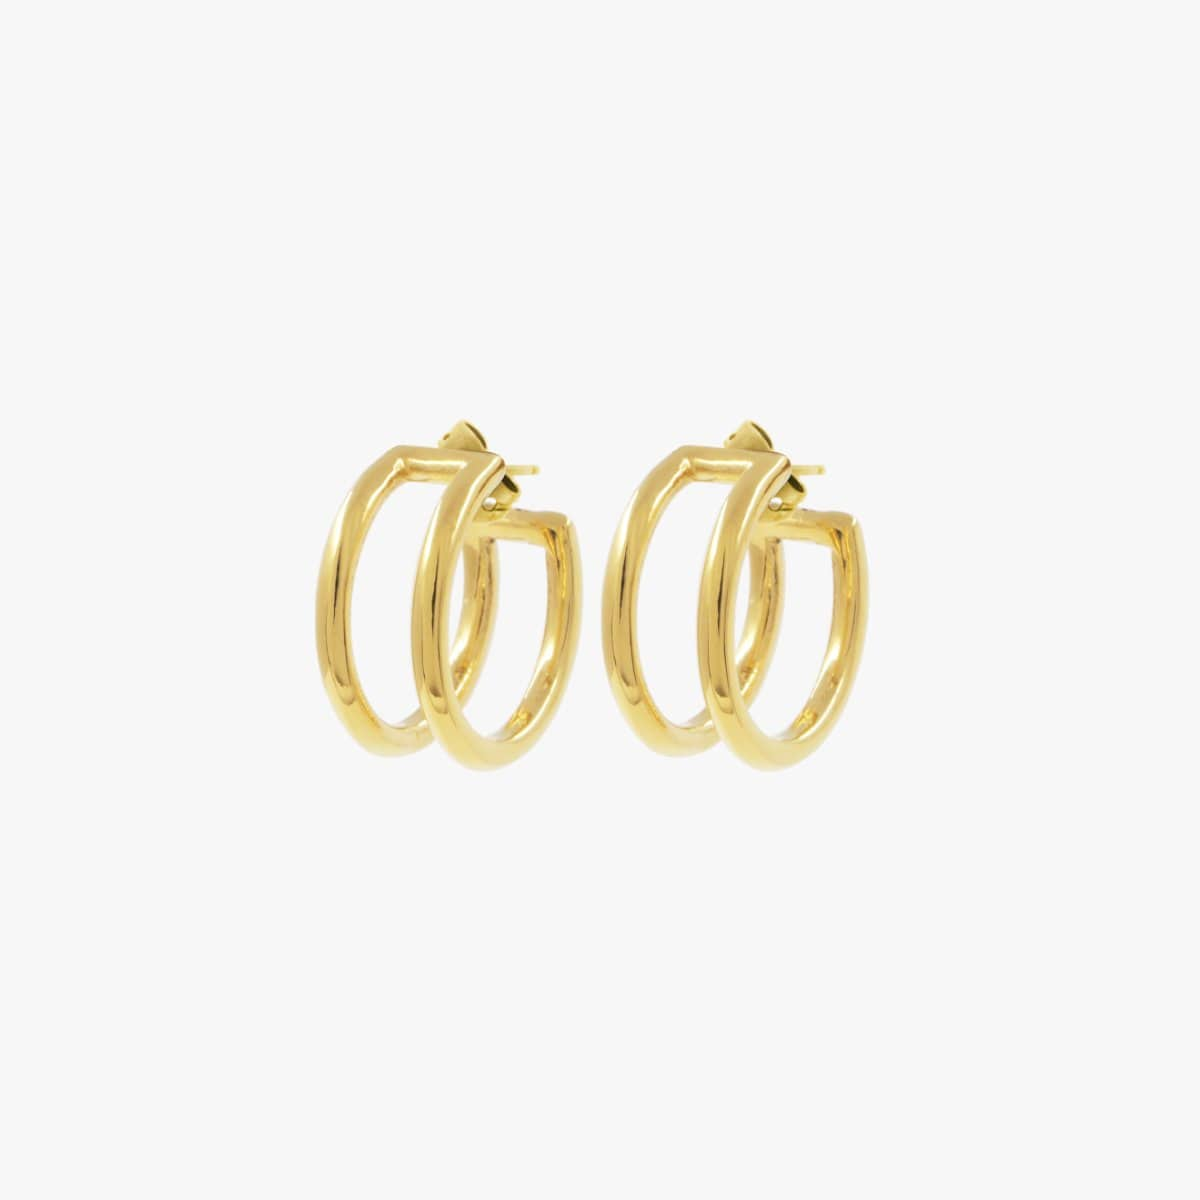 Gold Plated Earrings - E0063 ORO-CXC-Renee Taylor Gallery